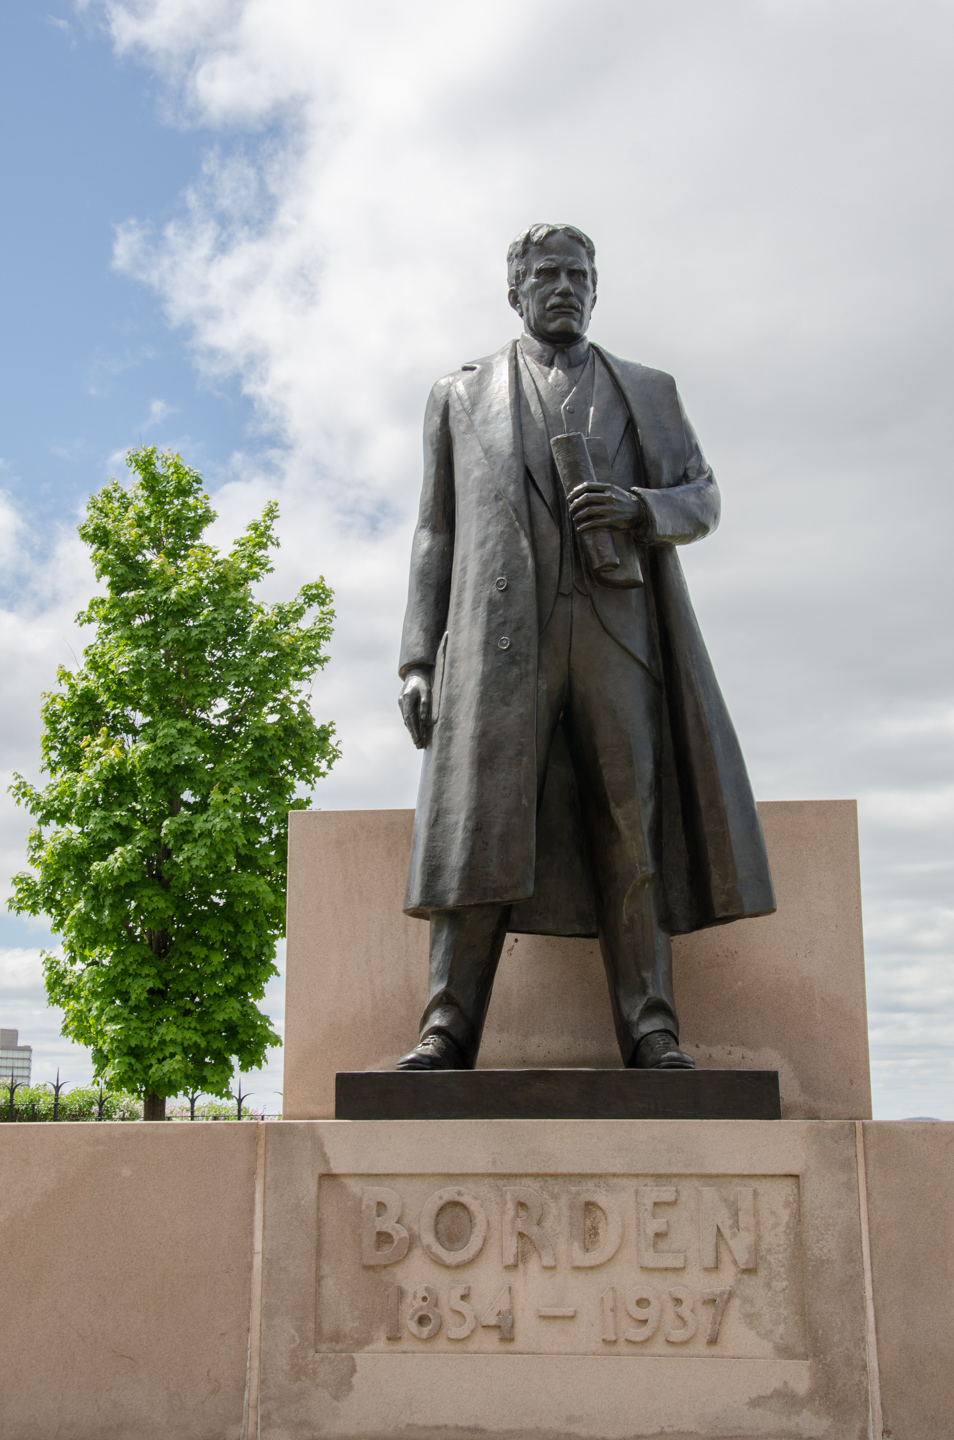 View enlarged image of the Sir Robert Laird Borden statue